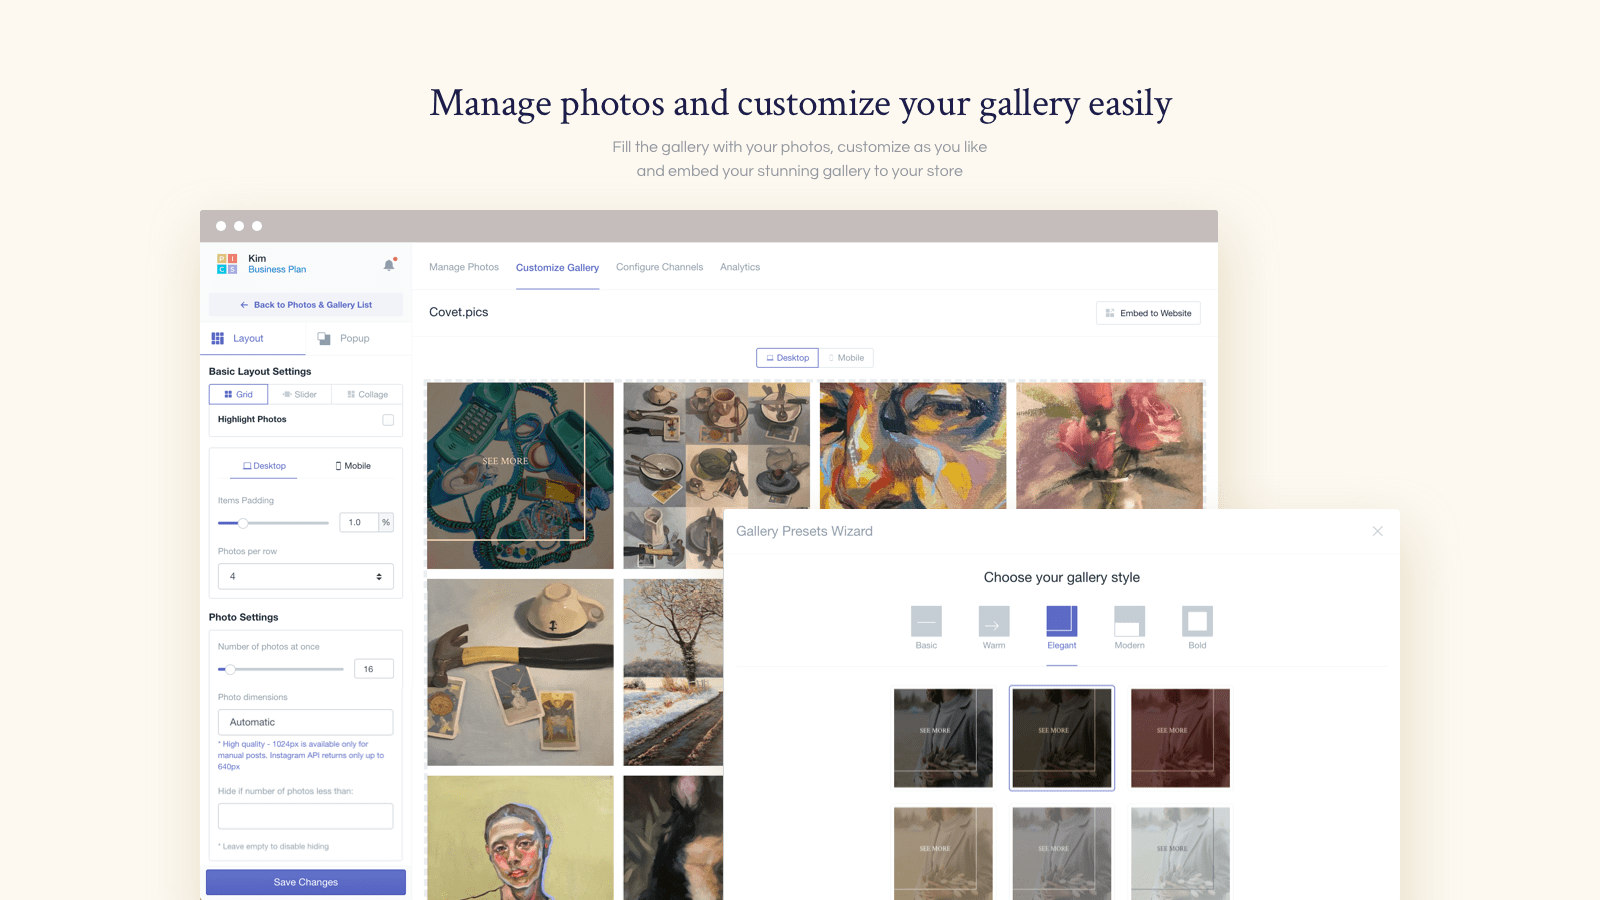 Manage photos and customize your gallery easily